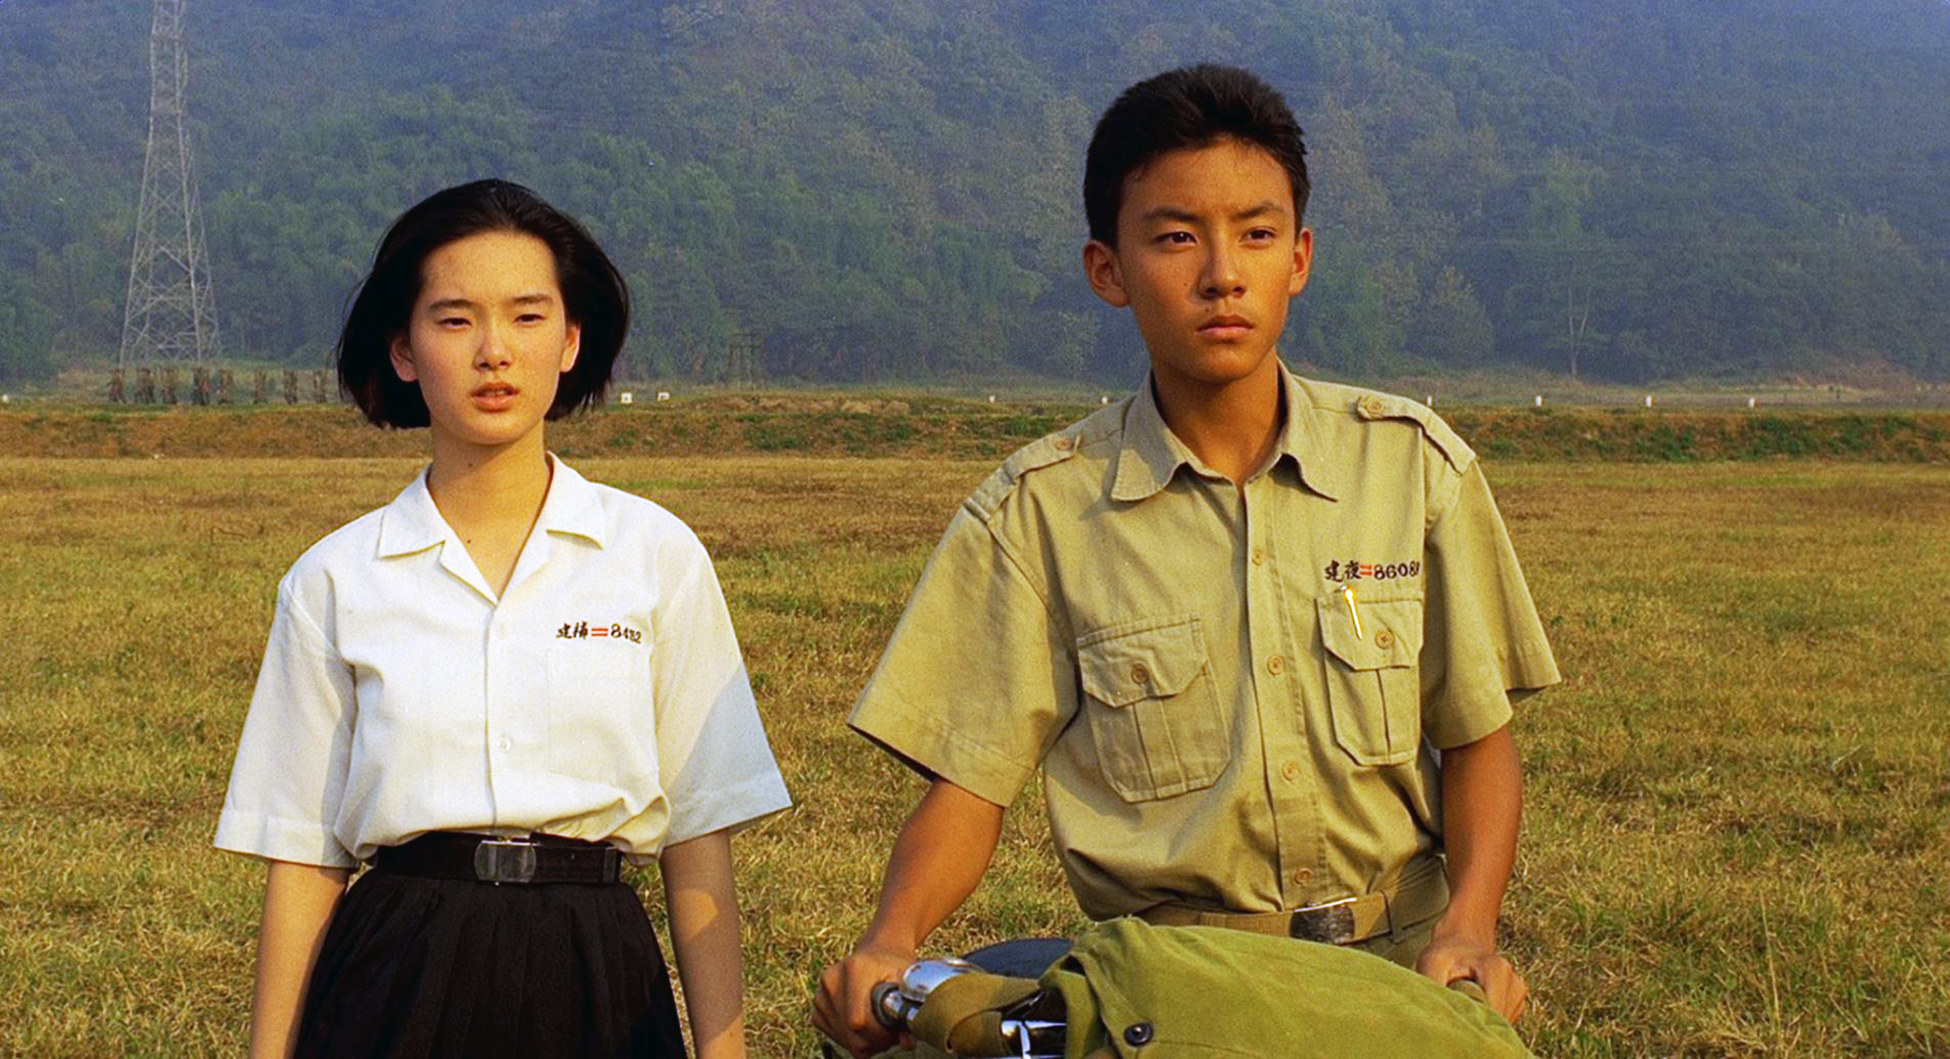 """Chang stands next to Lisa Yang in a field in a still from """"A Brighter Summer Day"""""""